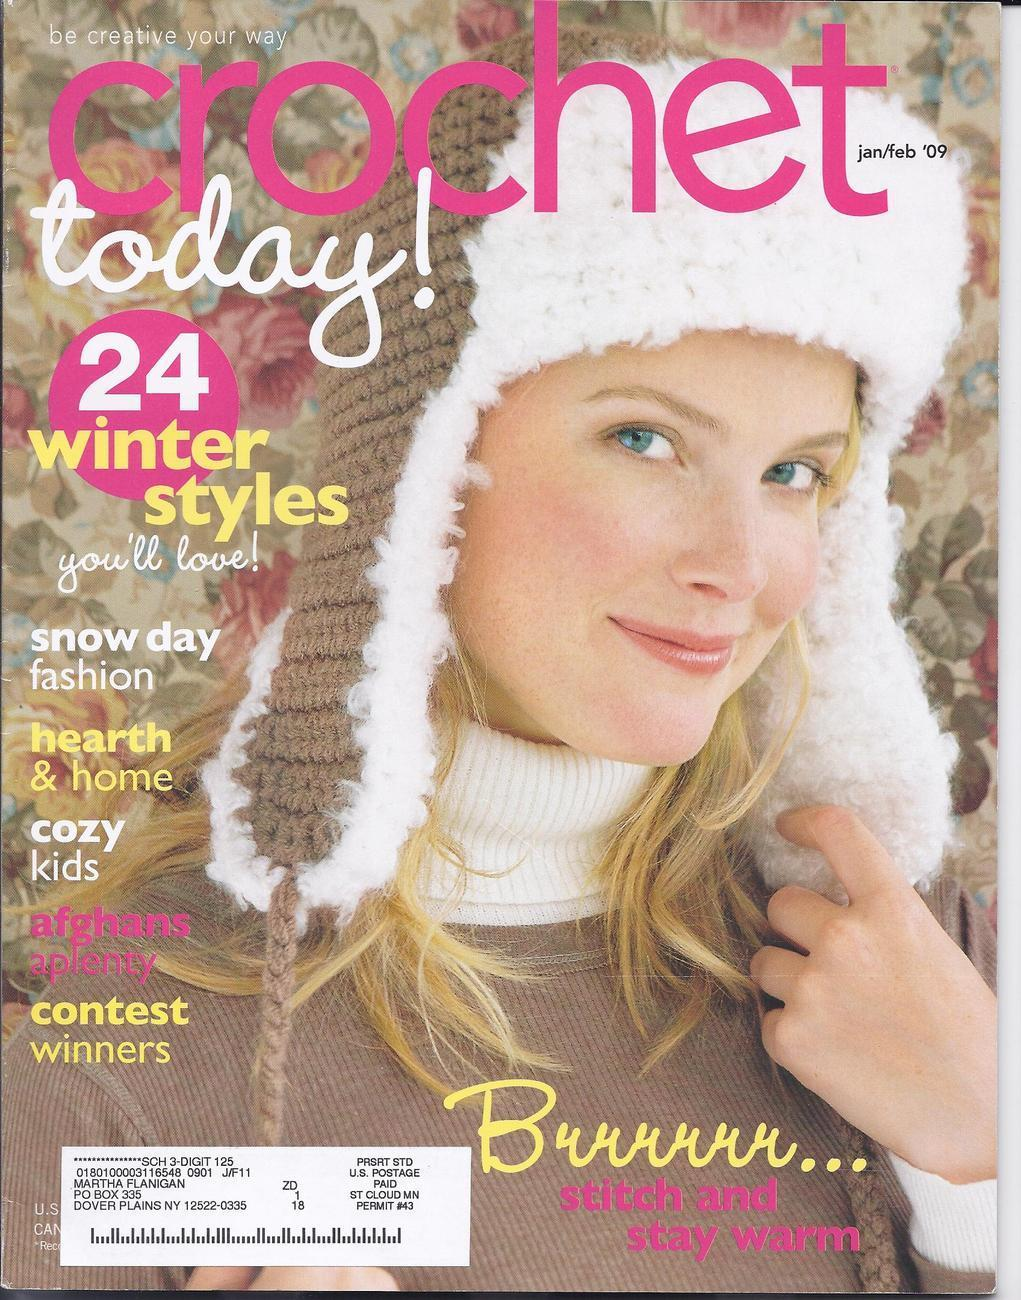 Crochet Today Magazine : Crochet Today! Magazine Jan/Feb 2009 - Mixed Crochet